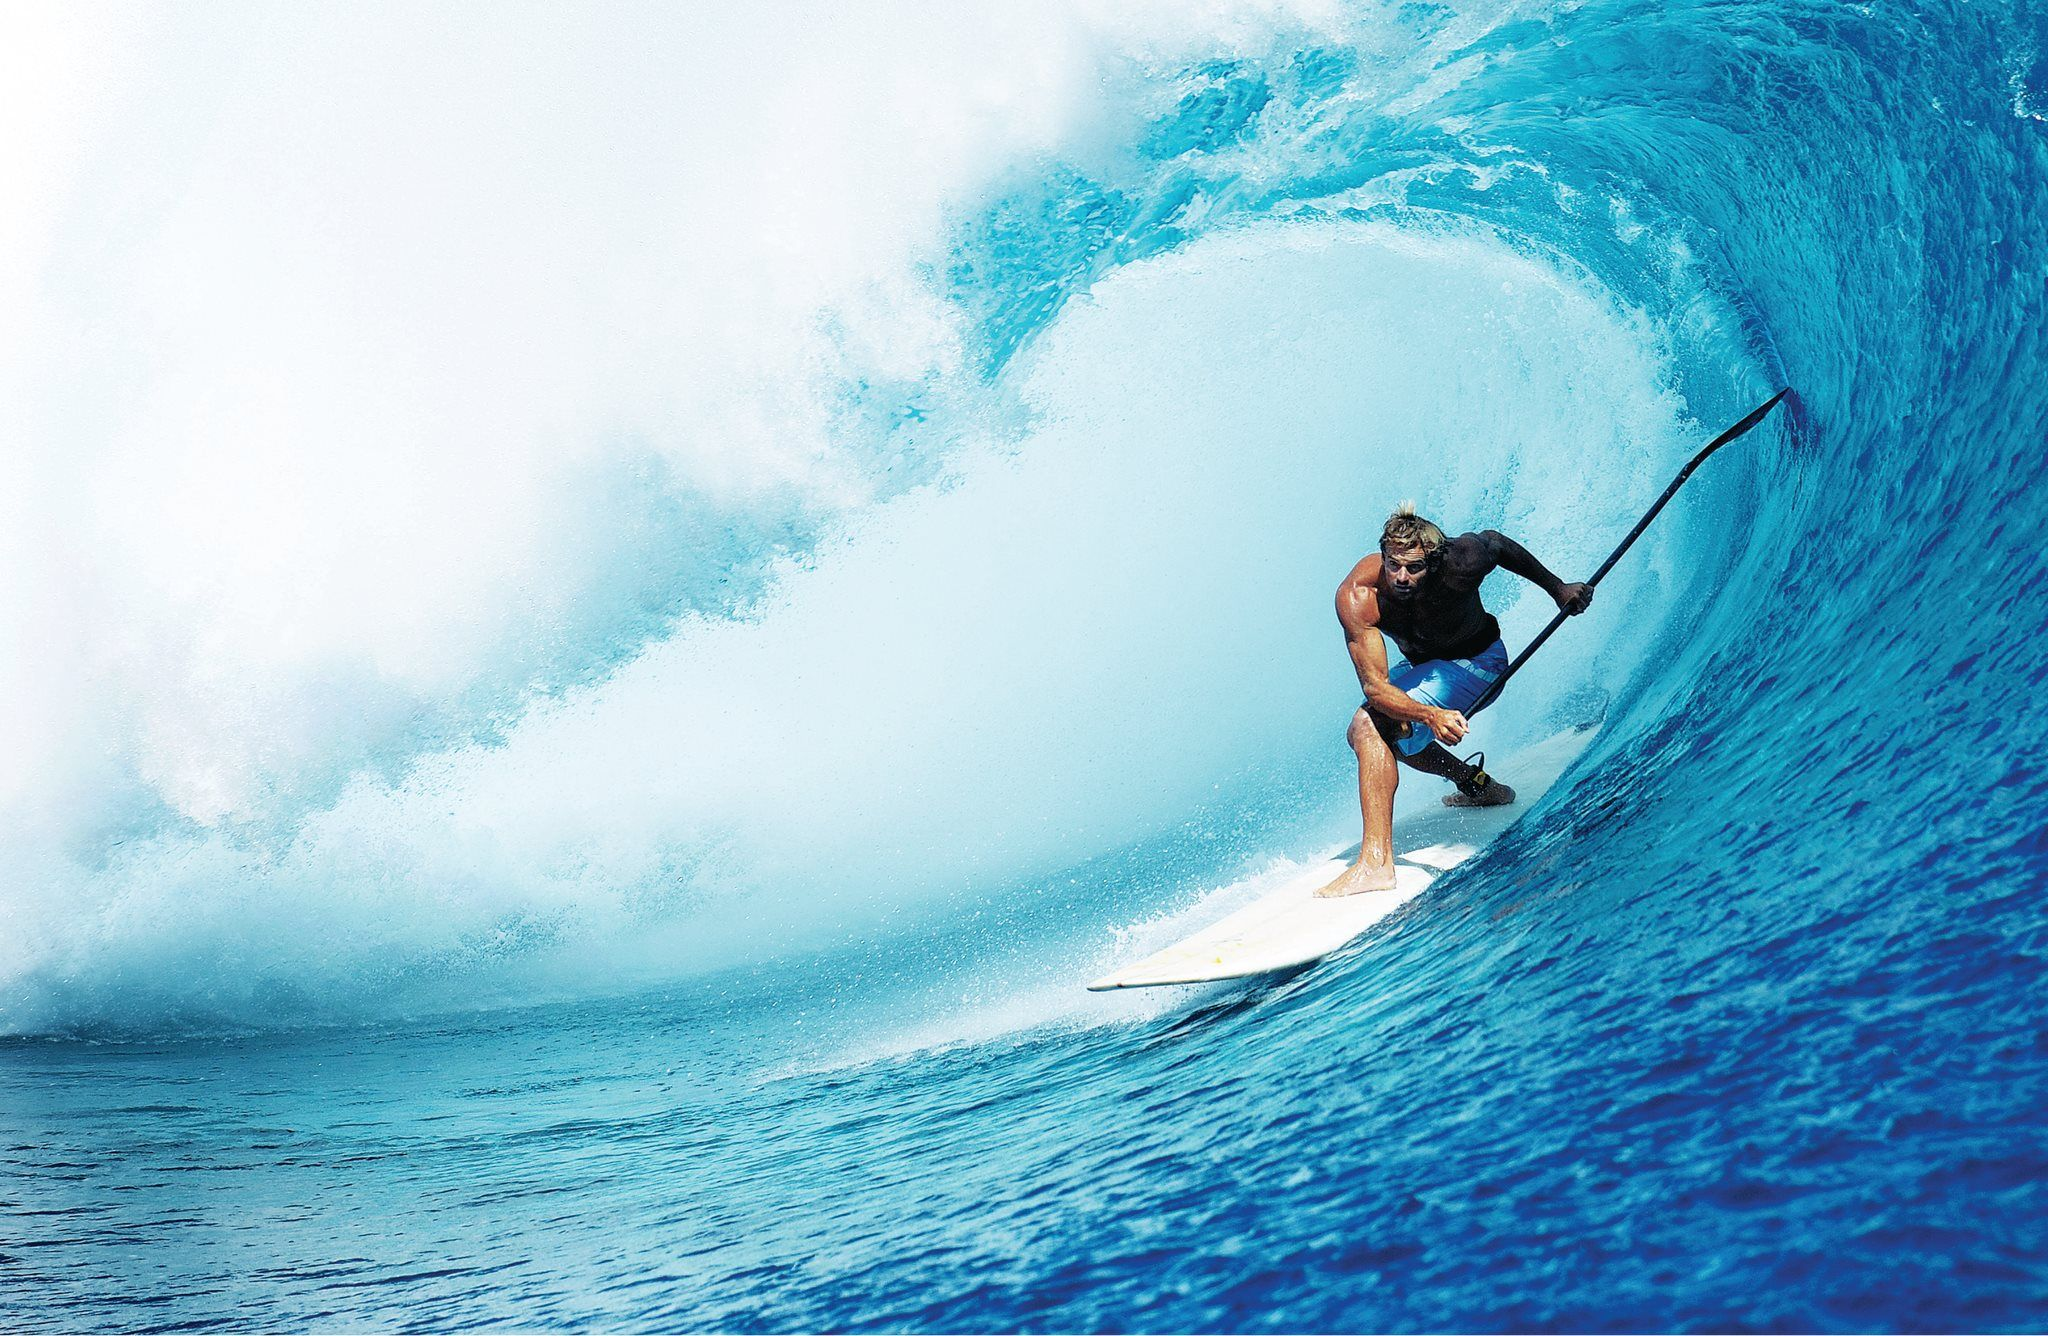 suping big waves laird hamilton